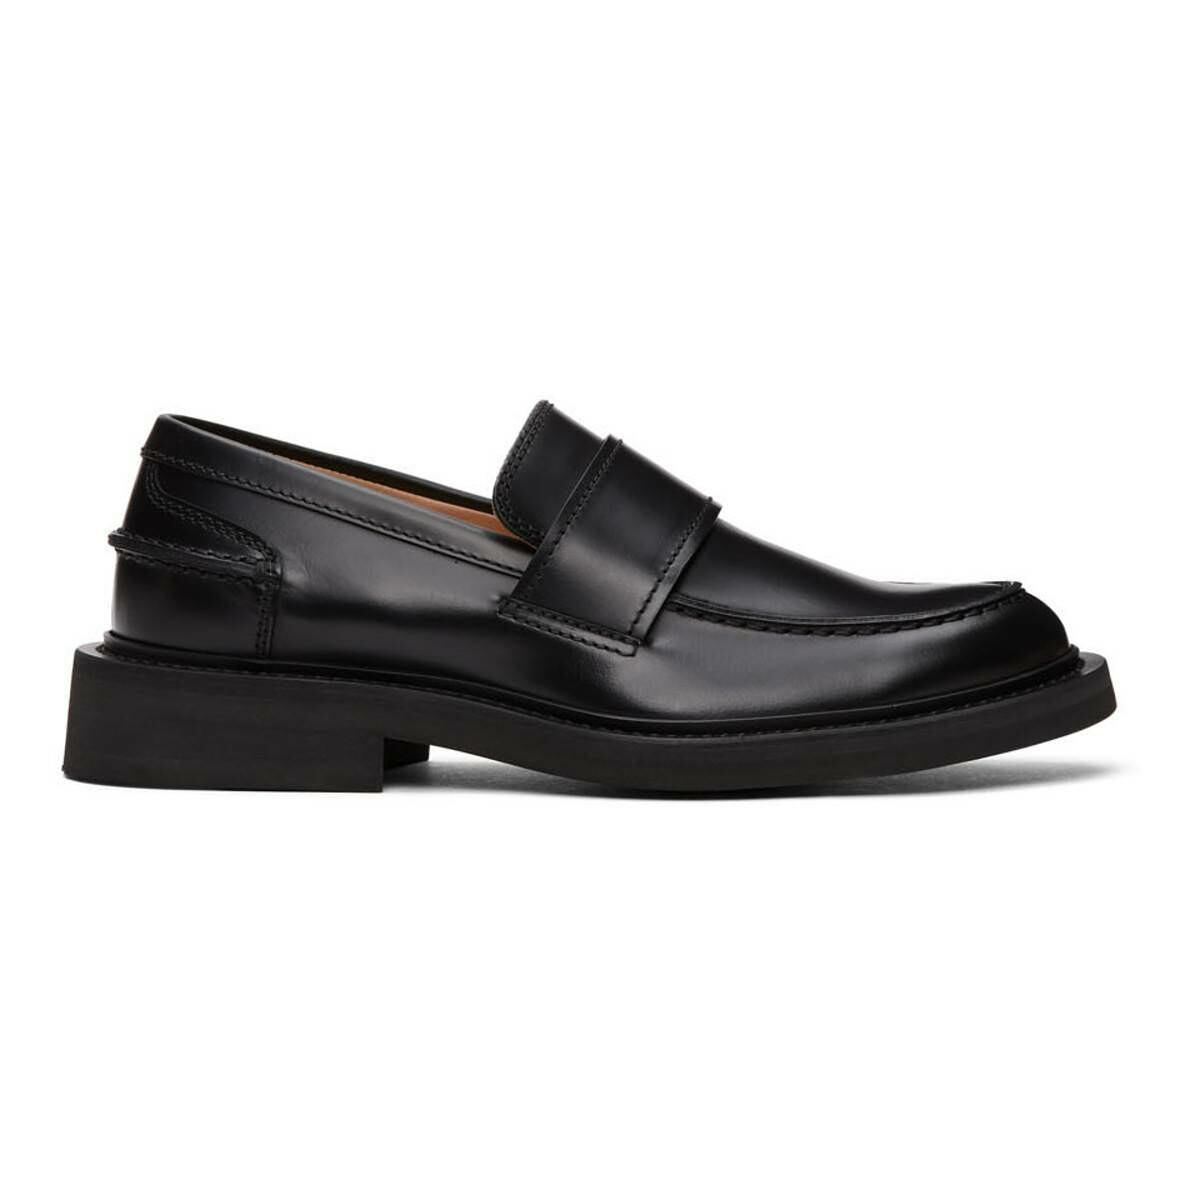 Bottega Veneta Black Rubber Sole Loafers Ssense USA MEN Men SHOES Mens LOAFERS